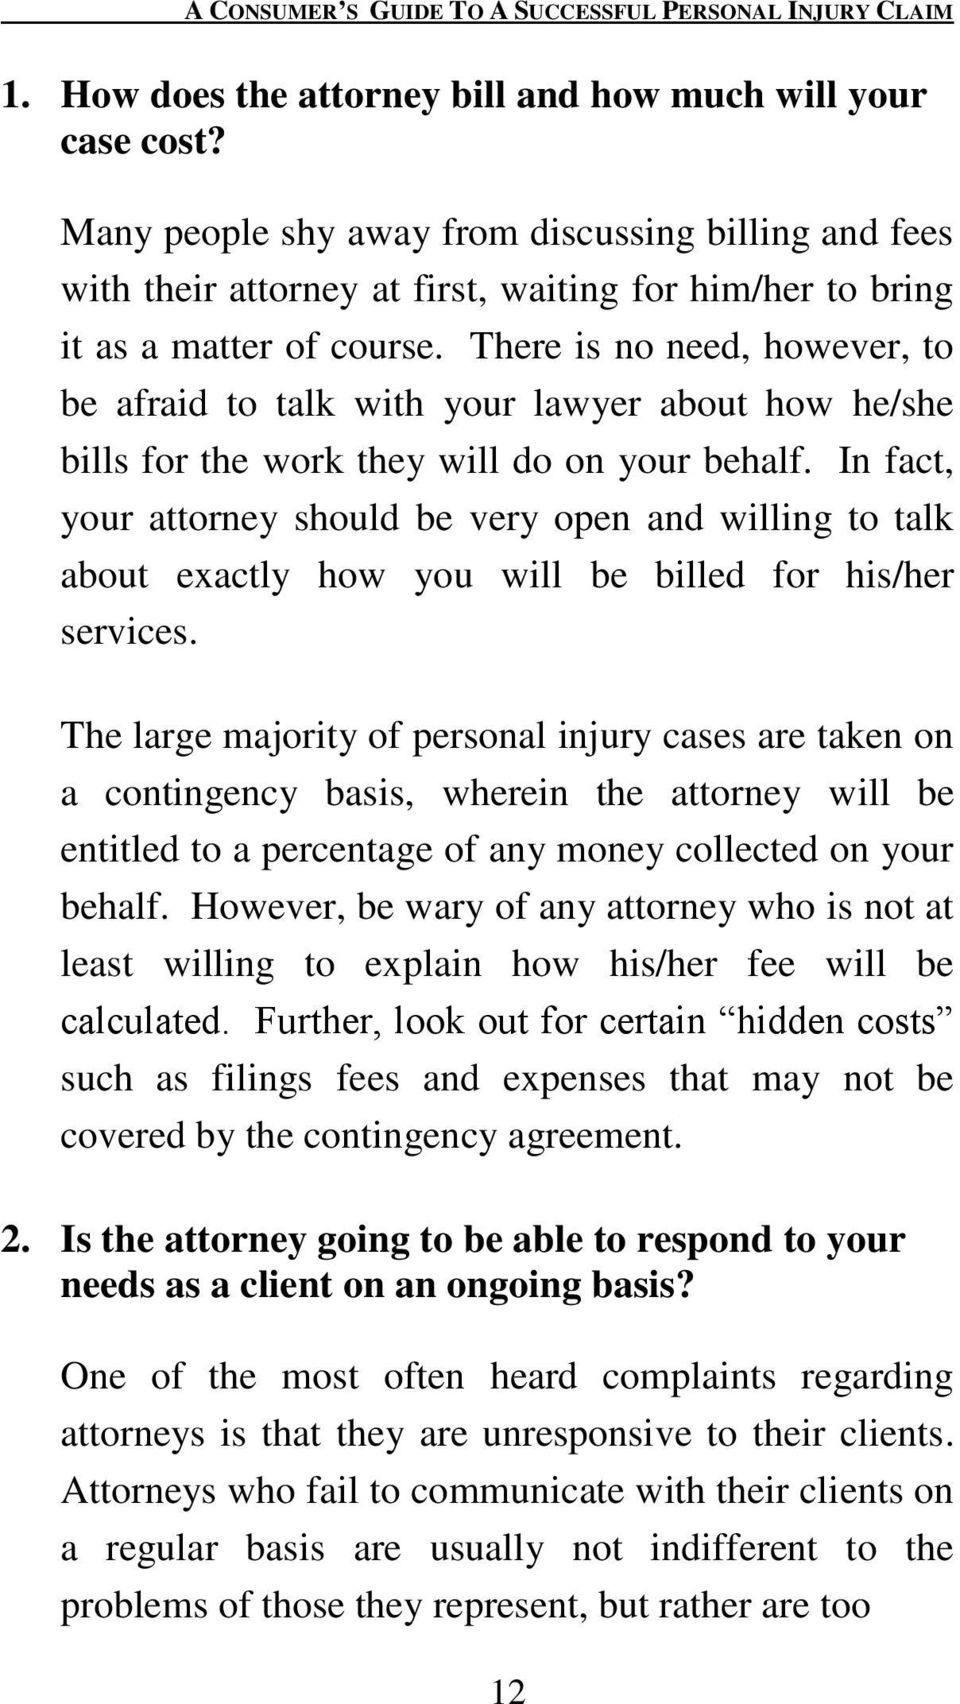 There is no need, however, to be afraid to talk with your lawyer about how he/she bills for the work they will do on your behalf.